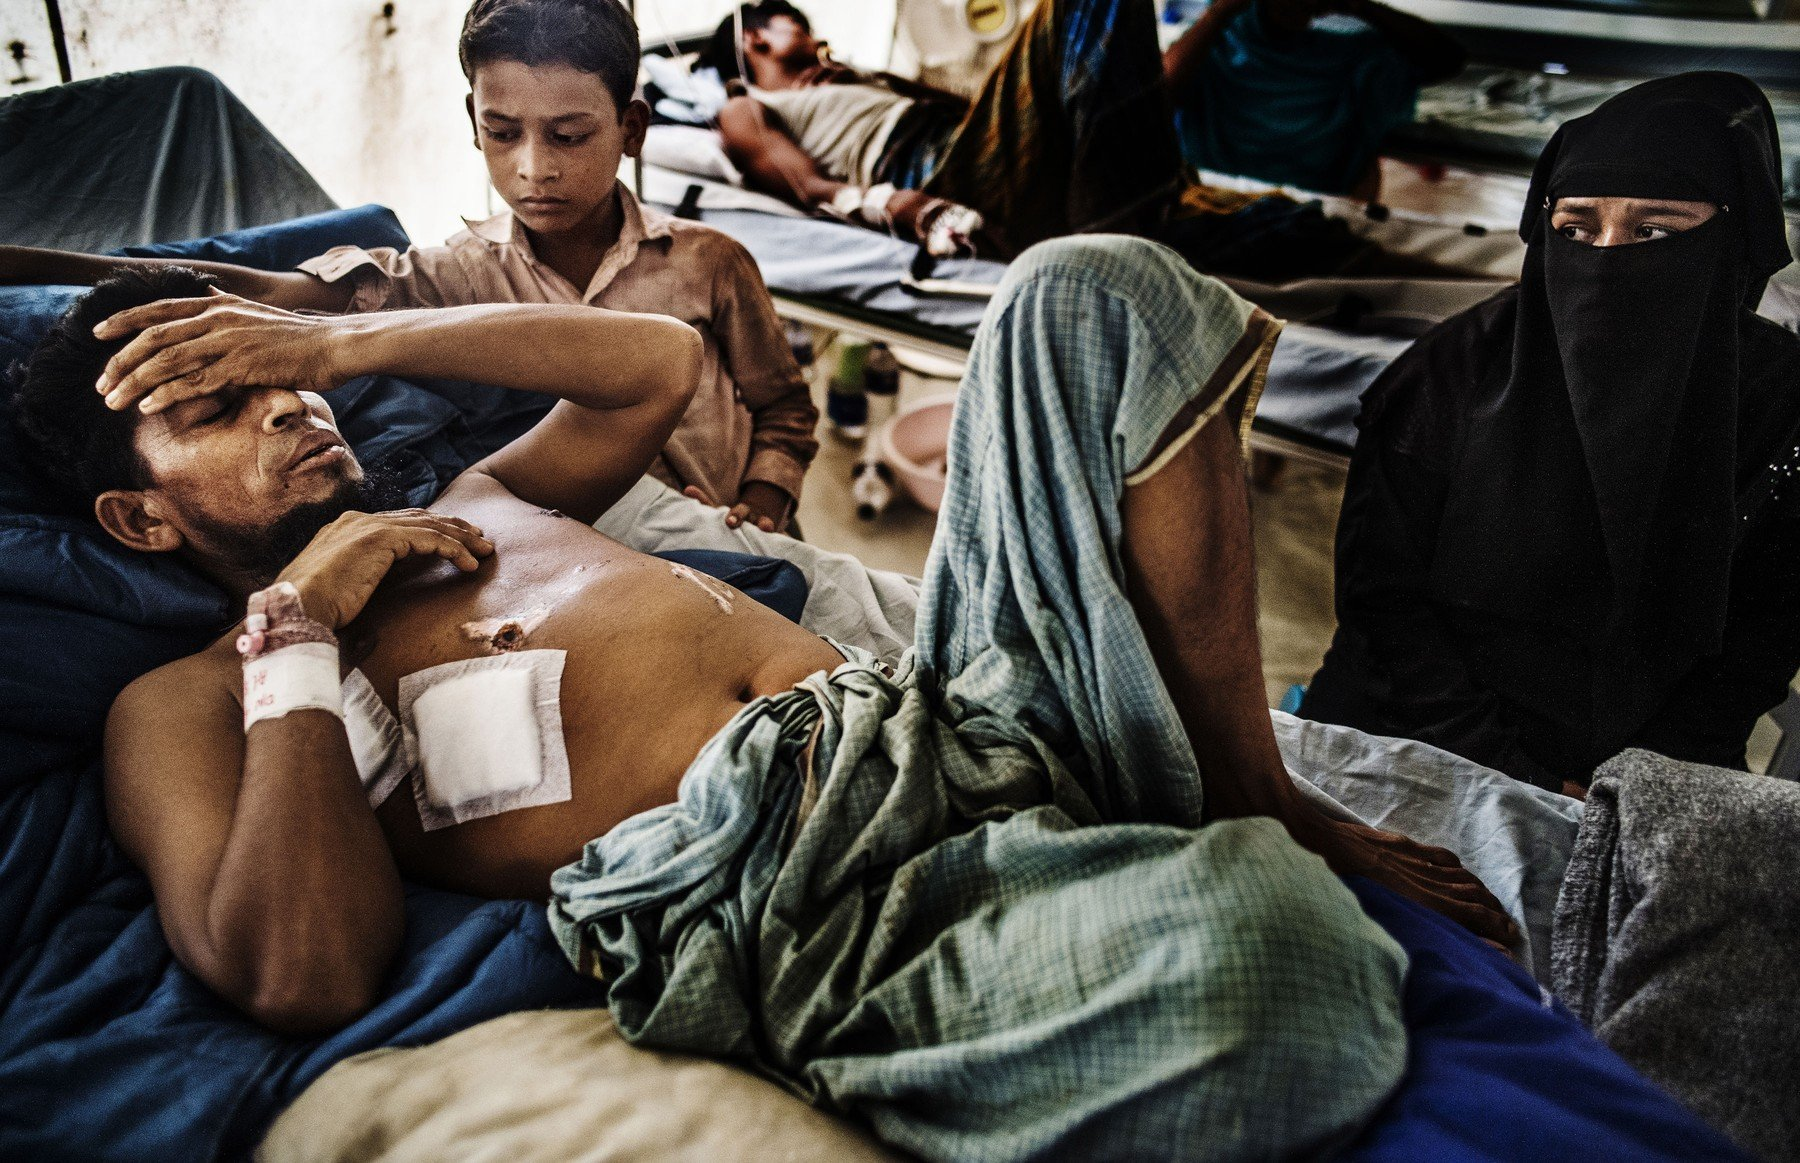 June 8, 2018 - Cox'S Bazar, Cox's Bazar, Bangladesh - At the Red Cross field hospital in Kutupalong, .Rohingya Anowar Sadek,10, visited his father Kamal Hossain,37, who had a leg amputated in a traffic accident when he was run over by a wood loaded truck. The influx of more than 700,000 refugees since last August has made living in refugee camps a daily struggle for survival. The field hospital is the only 24-hour facility within an hour's drive and has seen 25,000 patients since it opened last fall. On June 8, 2018 preparations are being made in anticipation of the heavy rains in the Rohingya refugee camps south of Cox's Bazar., Image: 374266793, License: Rights-managed, Restrictions: , Model Release: no, Credit line: Profimedia, Zuma Press - News